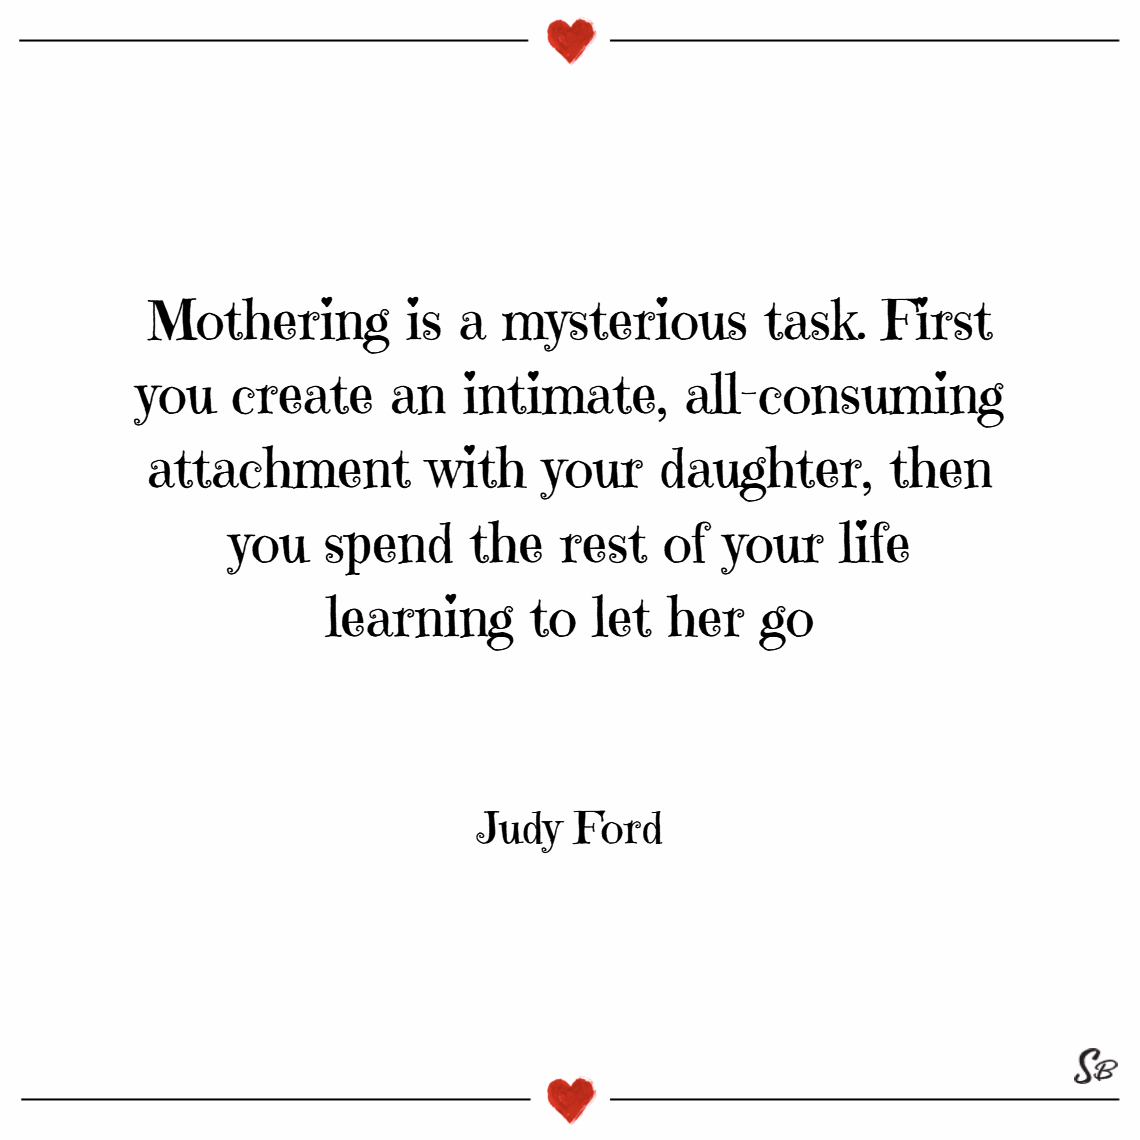 Mothering is a mysterious task. first you create an intimate, all consuming attachment with your daughter, then you spend the rest of your life learning to let her go. – judy ford